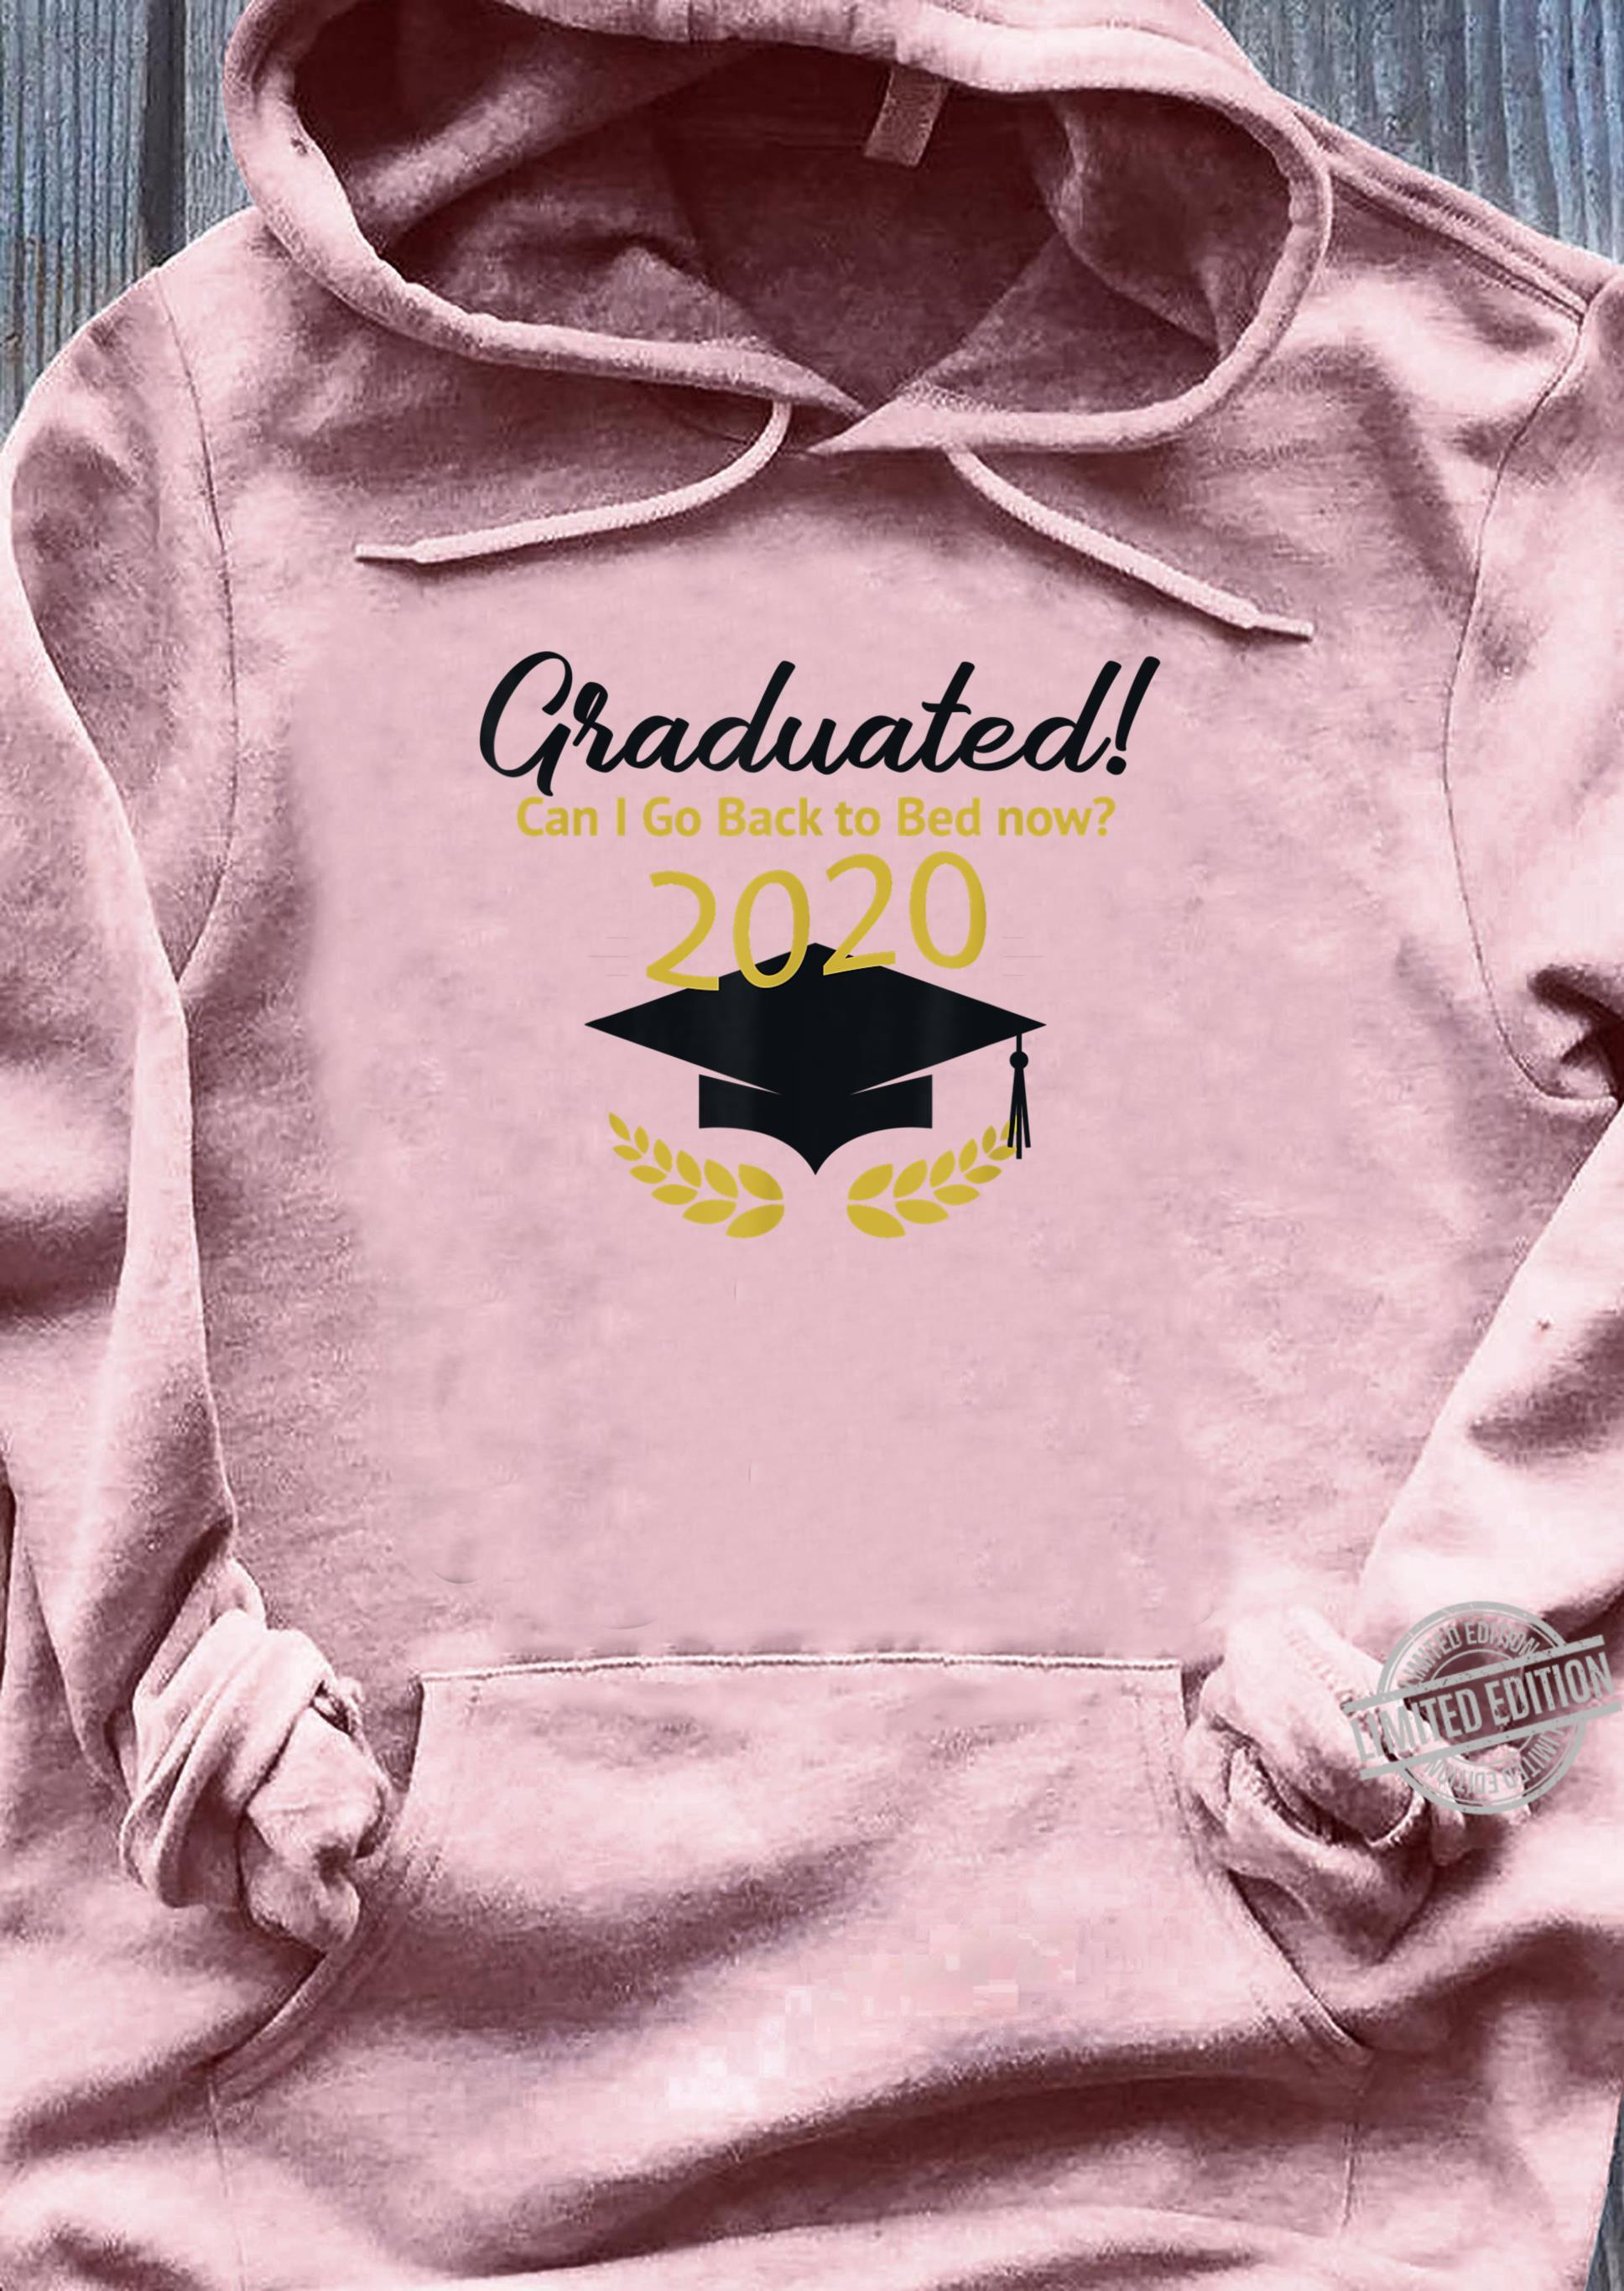 Can I Go Back to Bed, Graduation For Him Her Shirt ladies tee